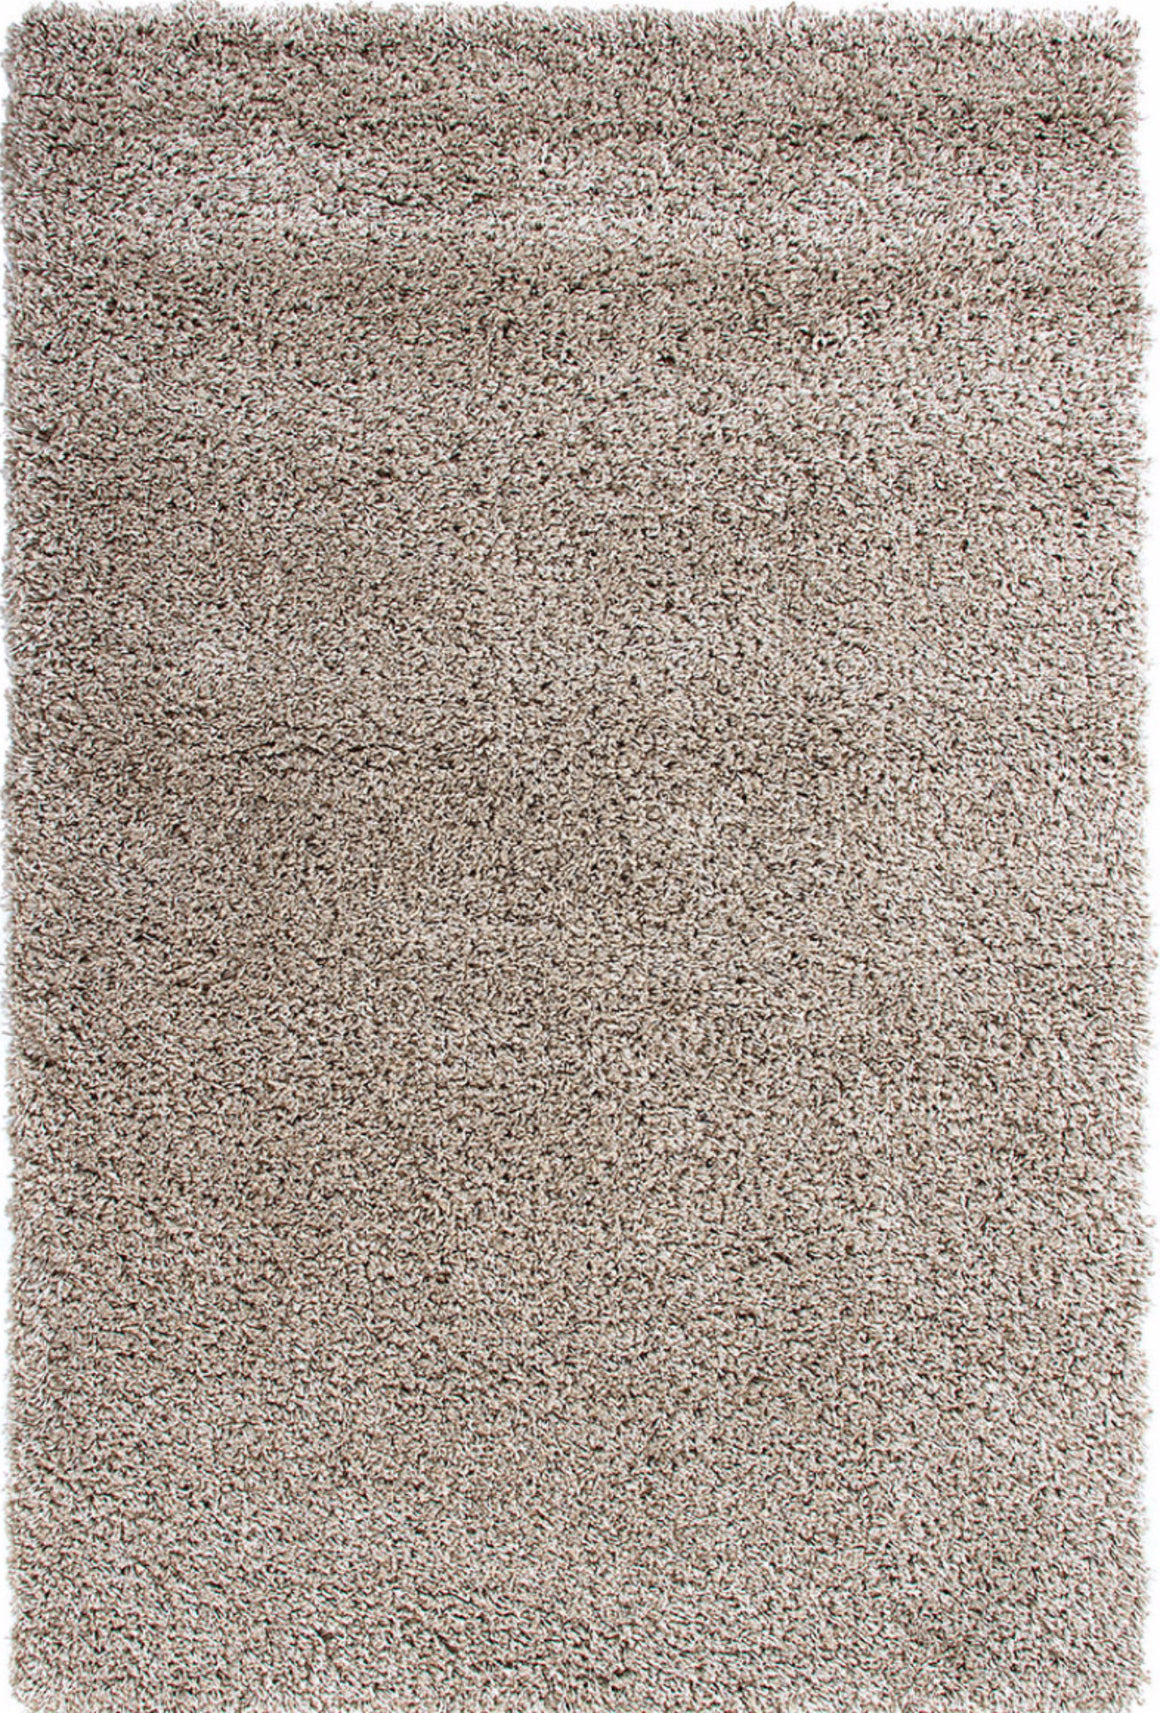 Tapete Twilight 6611 Beige